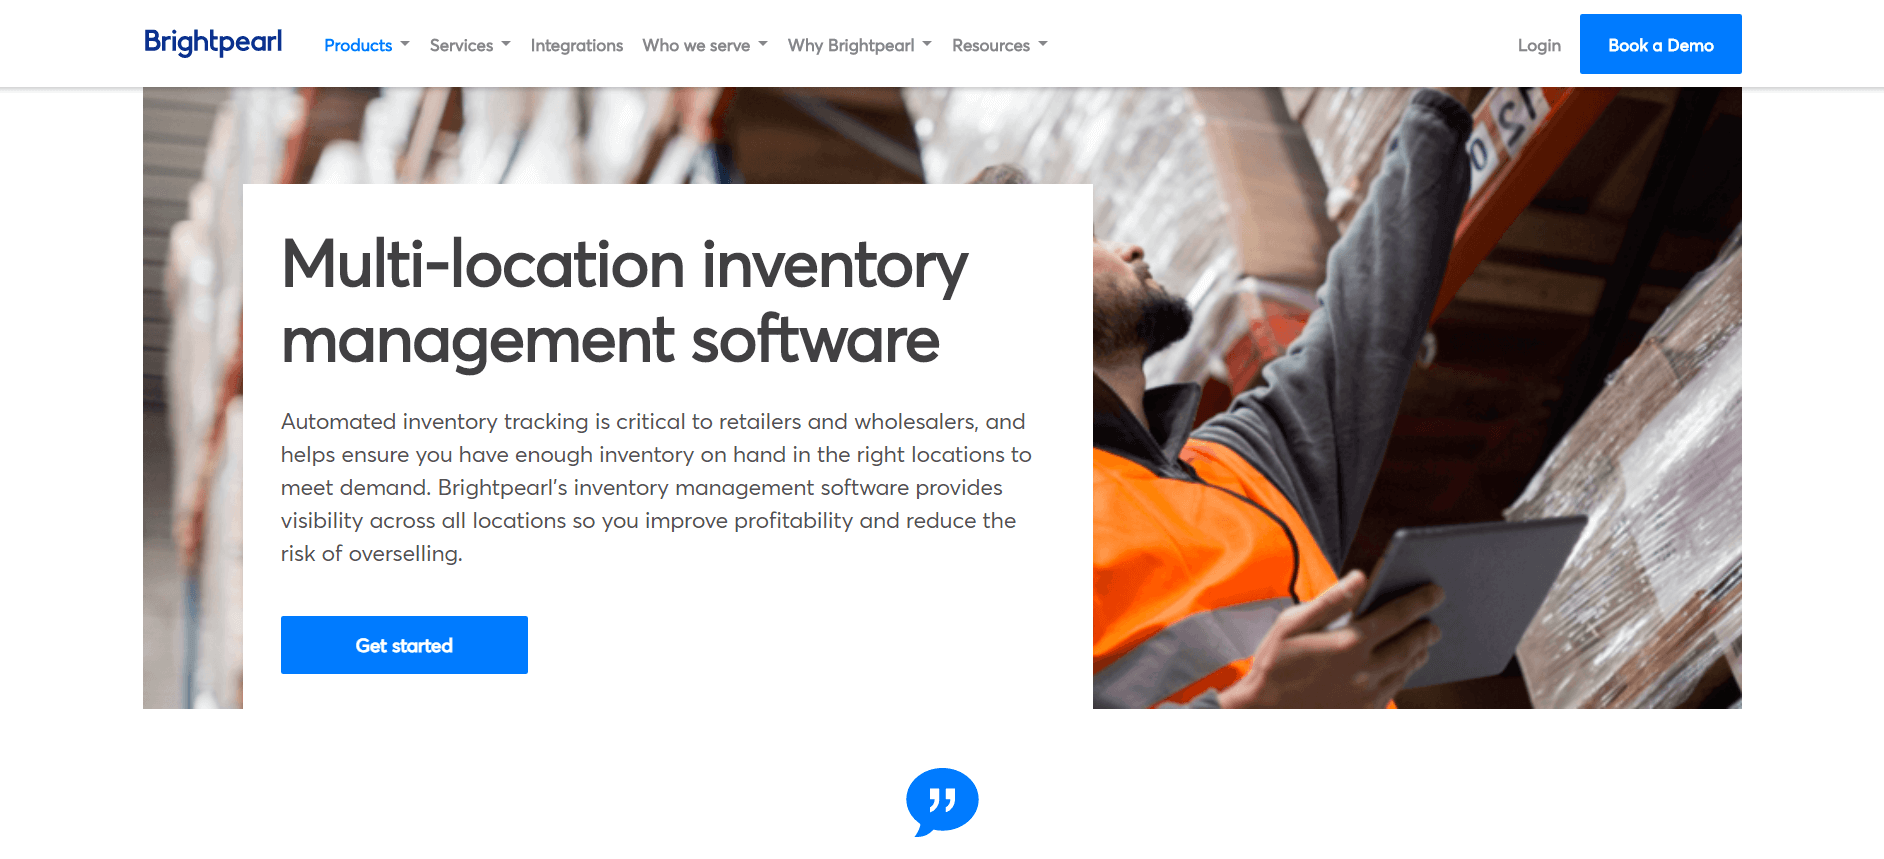 brightpearl inventory management software